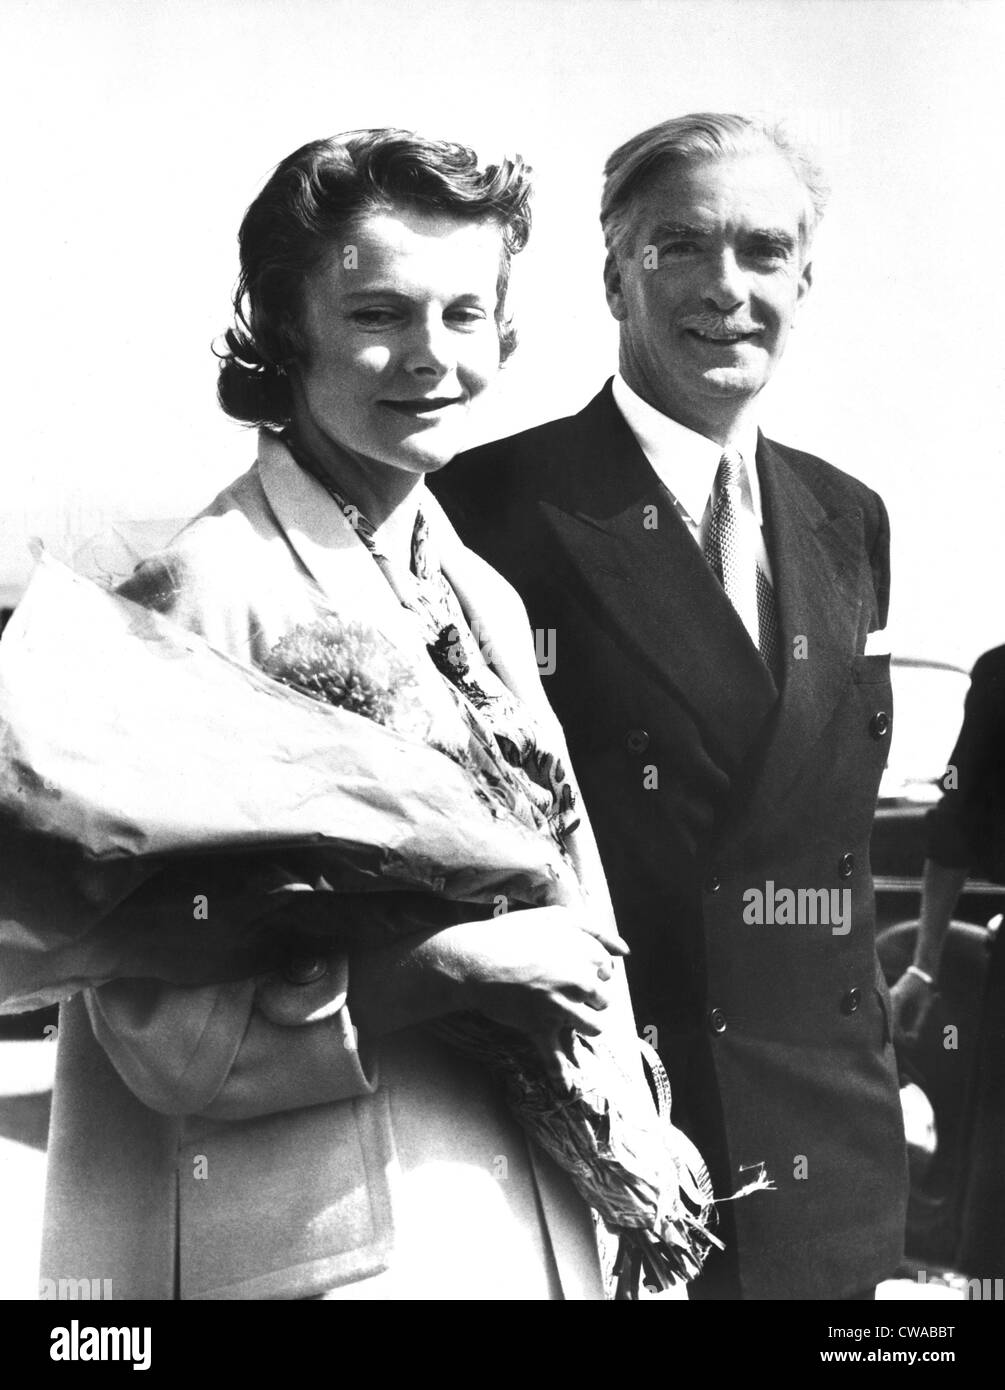 British Prime Minister Anthony Eden with wife, Clarissa, ca. 1955. Courtesy: CSU Archives / Everett Collection - Stock Image